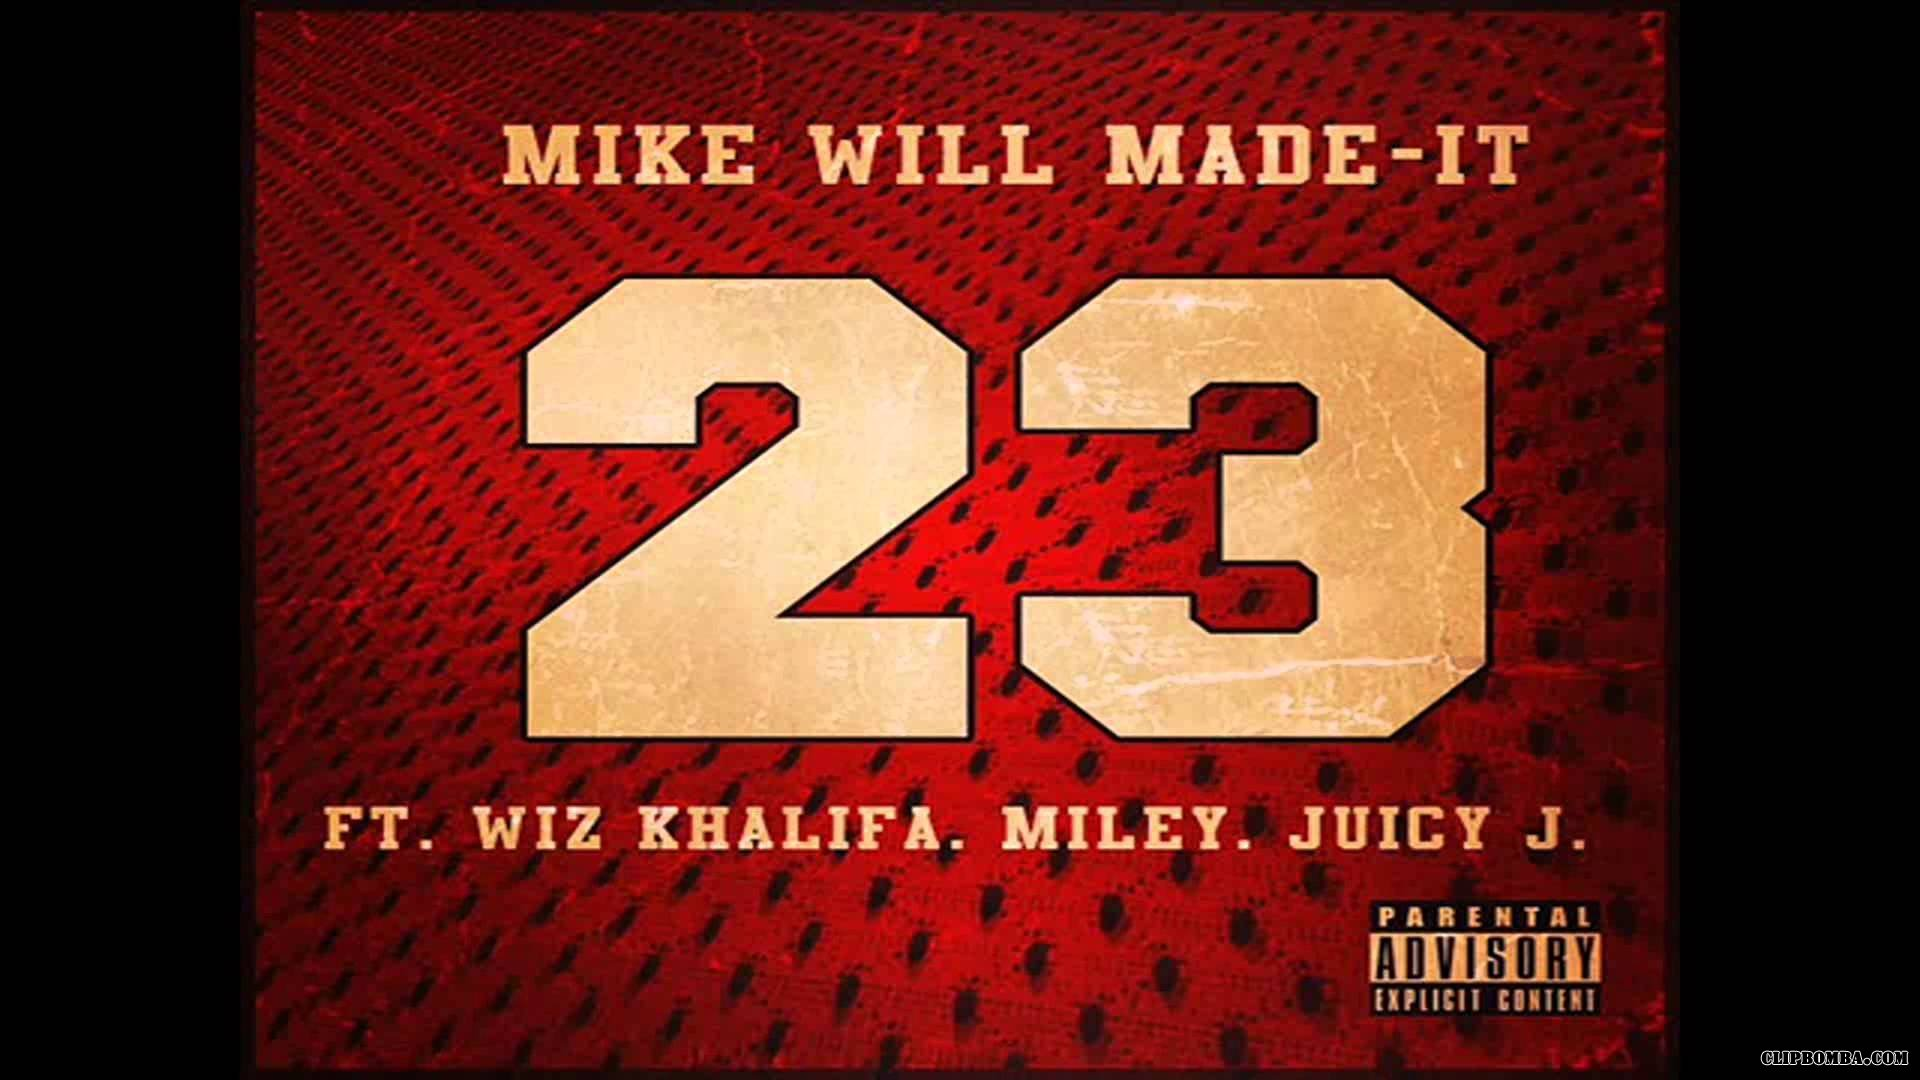 Miley Cyrus feat. Wiz Khalifa & Juicy J - 23 (2013)